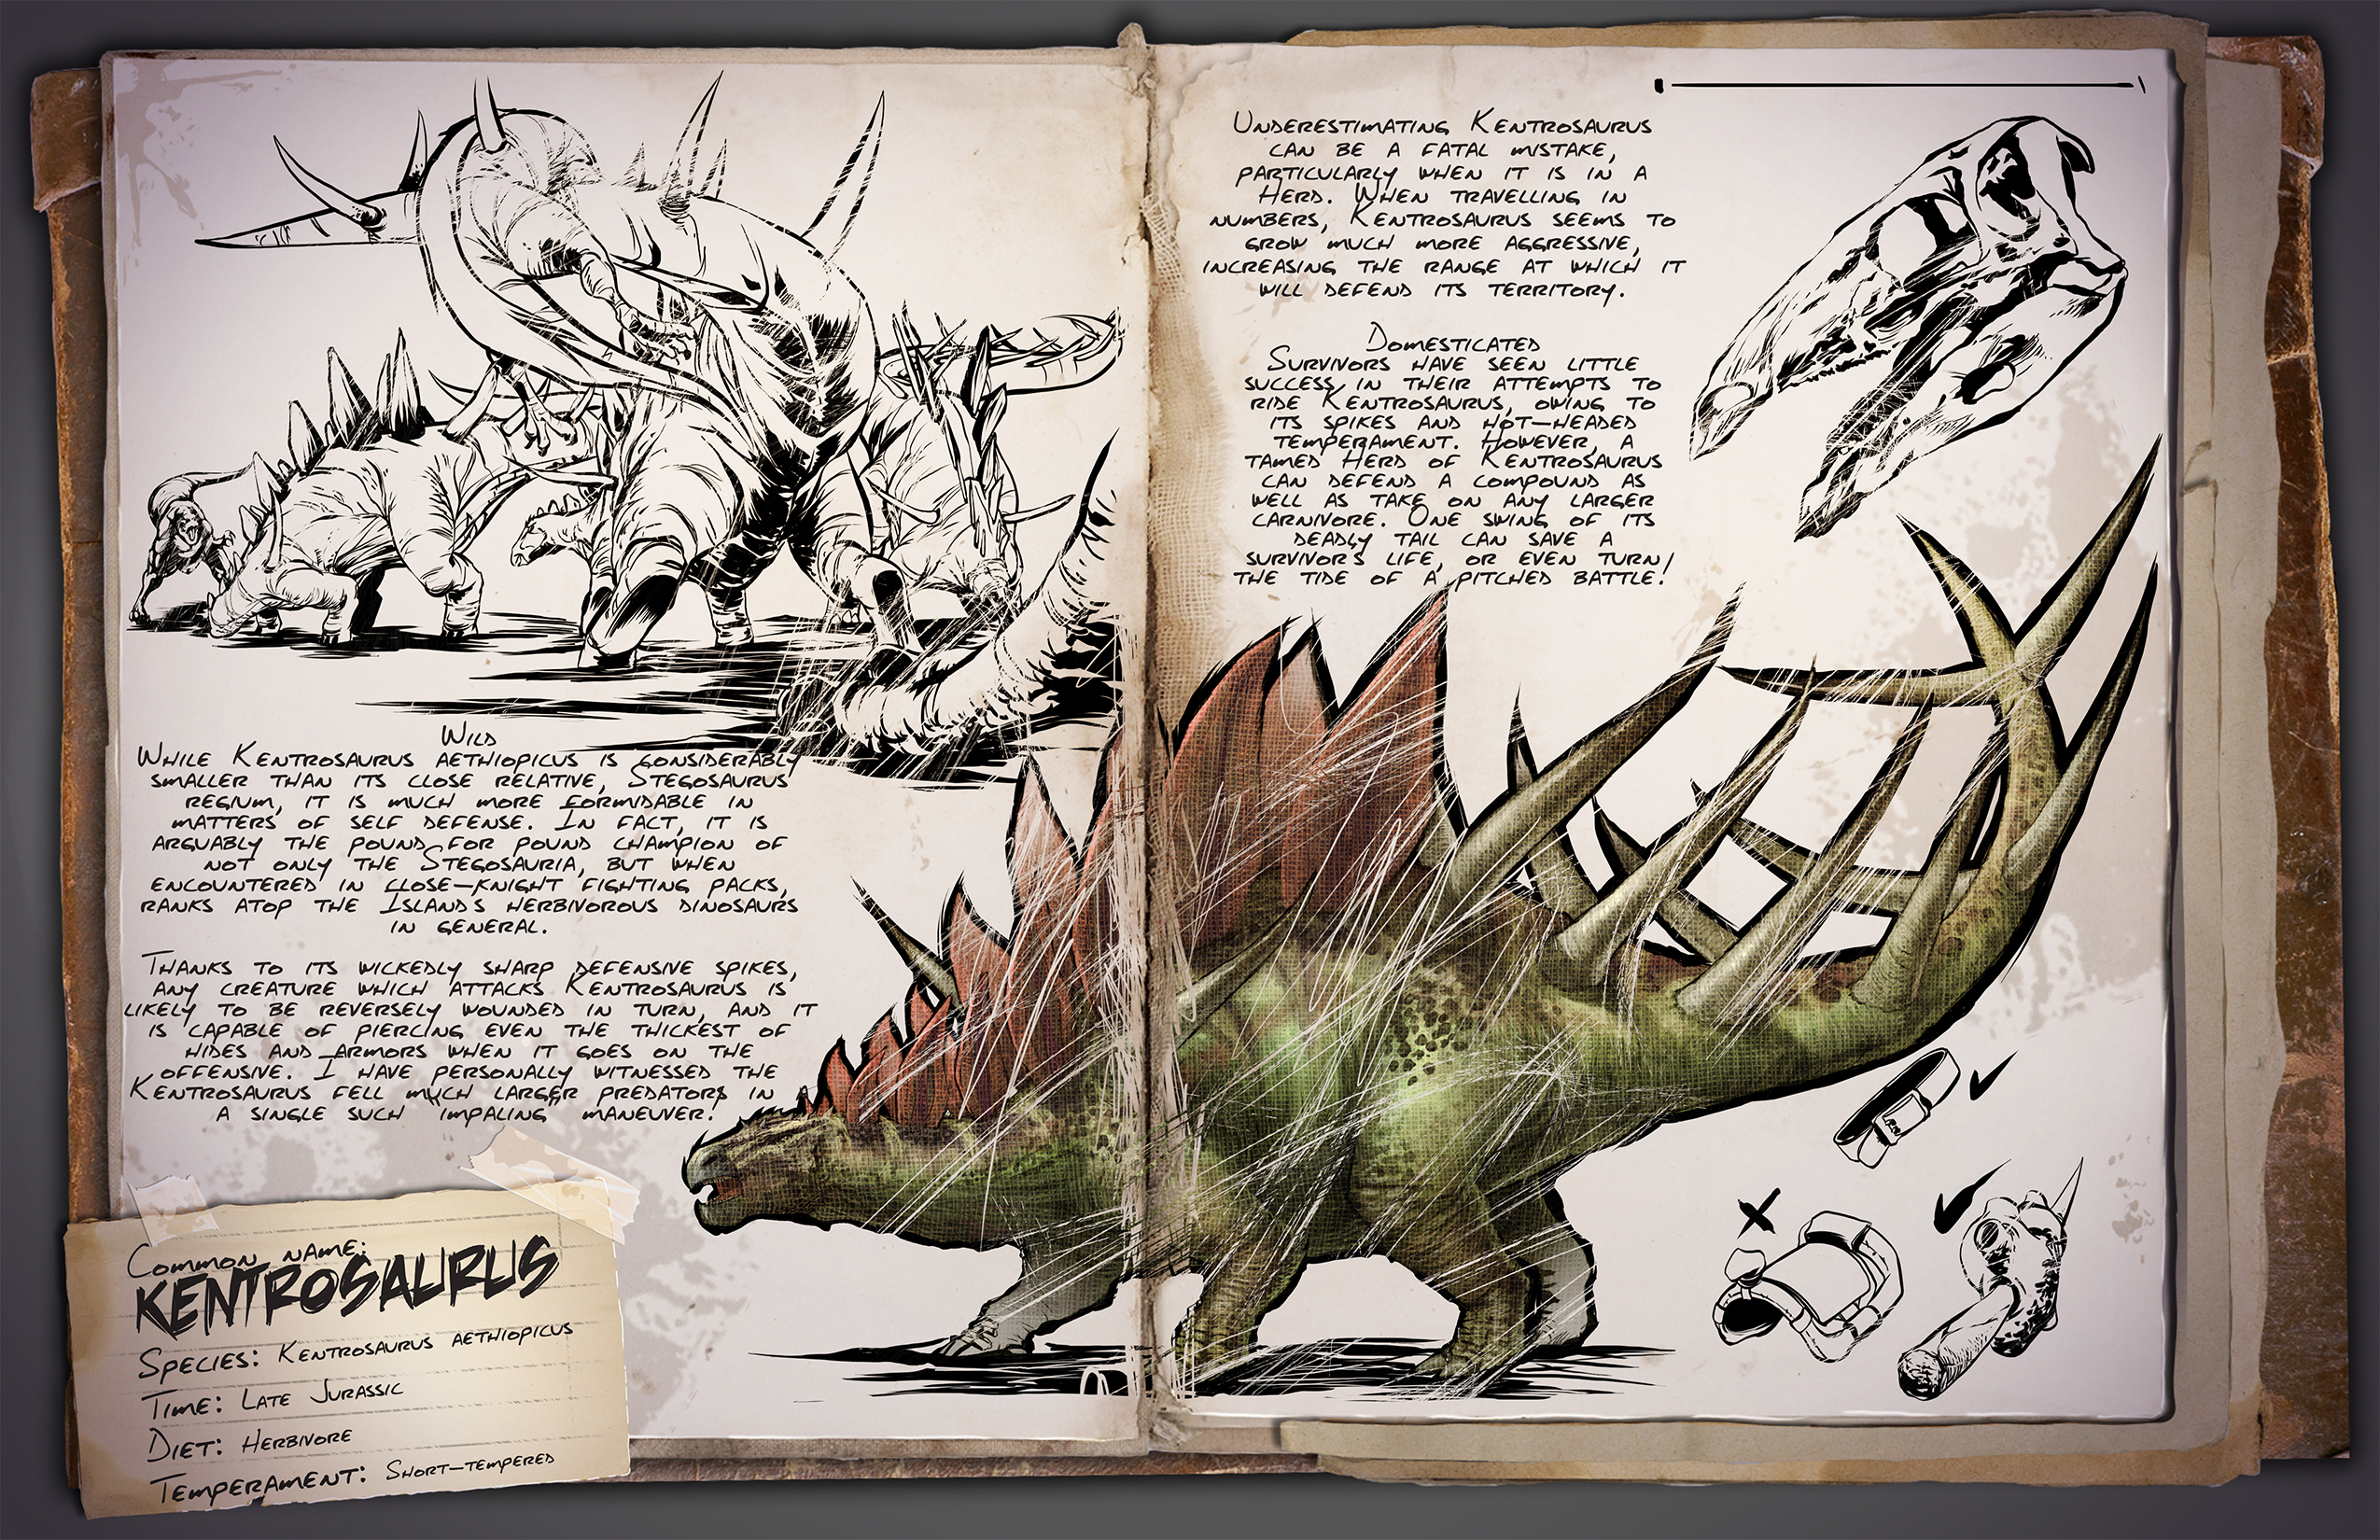 100 ark blueprint list colors vault official ark survival evolved ark blueprint list colors steam community group announcements ark survival evolved malvernweather Image collections